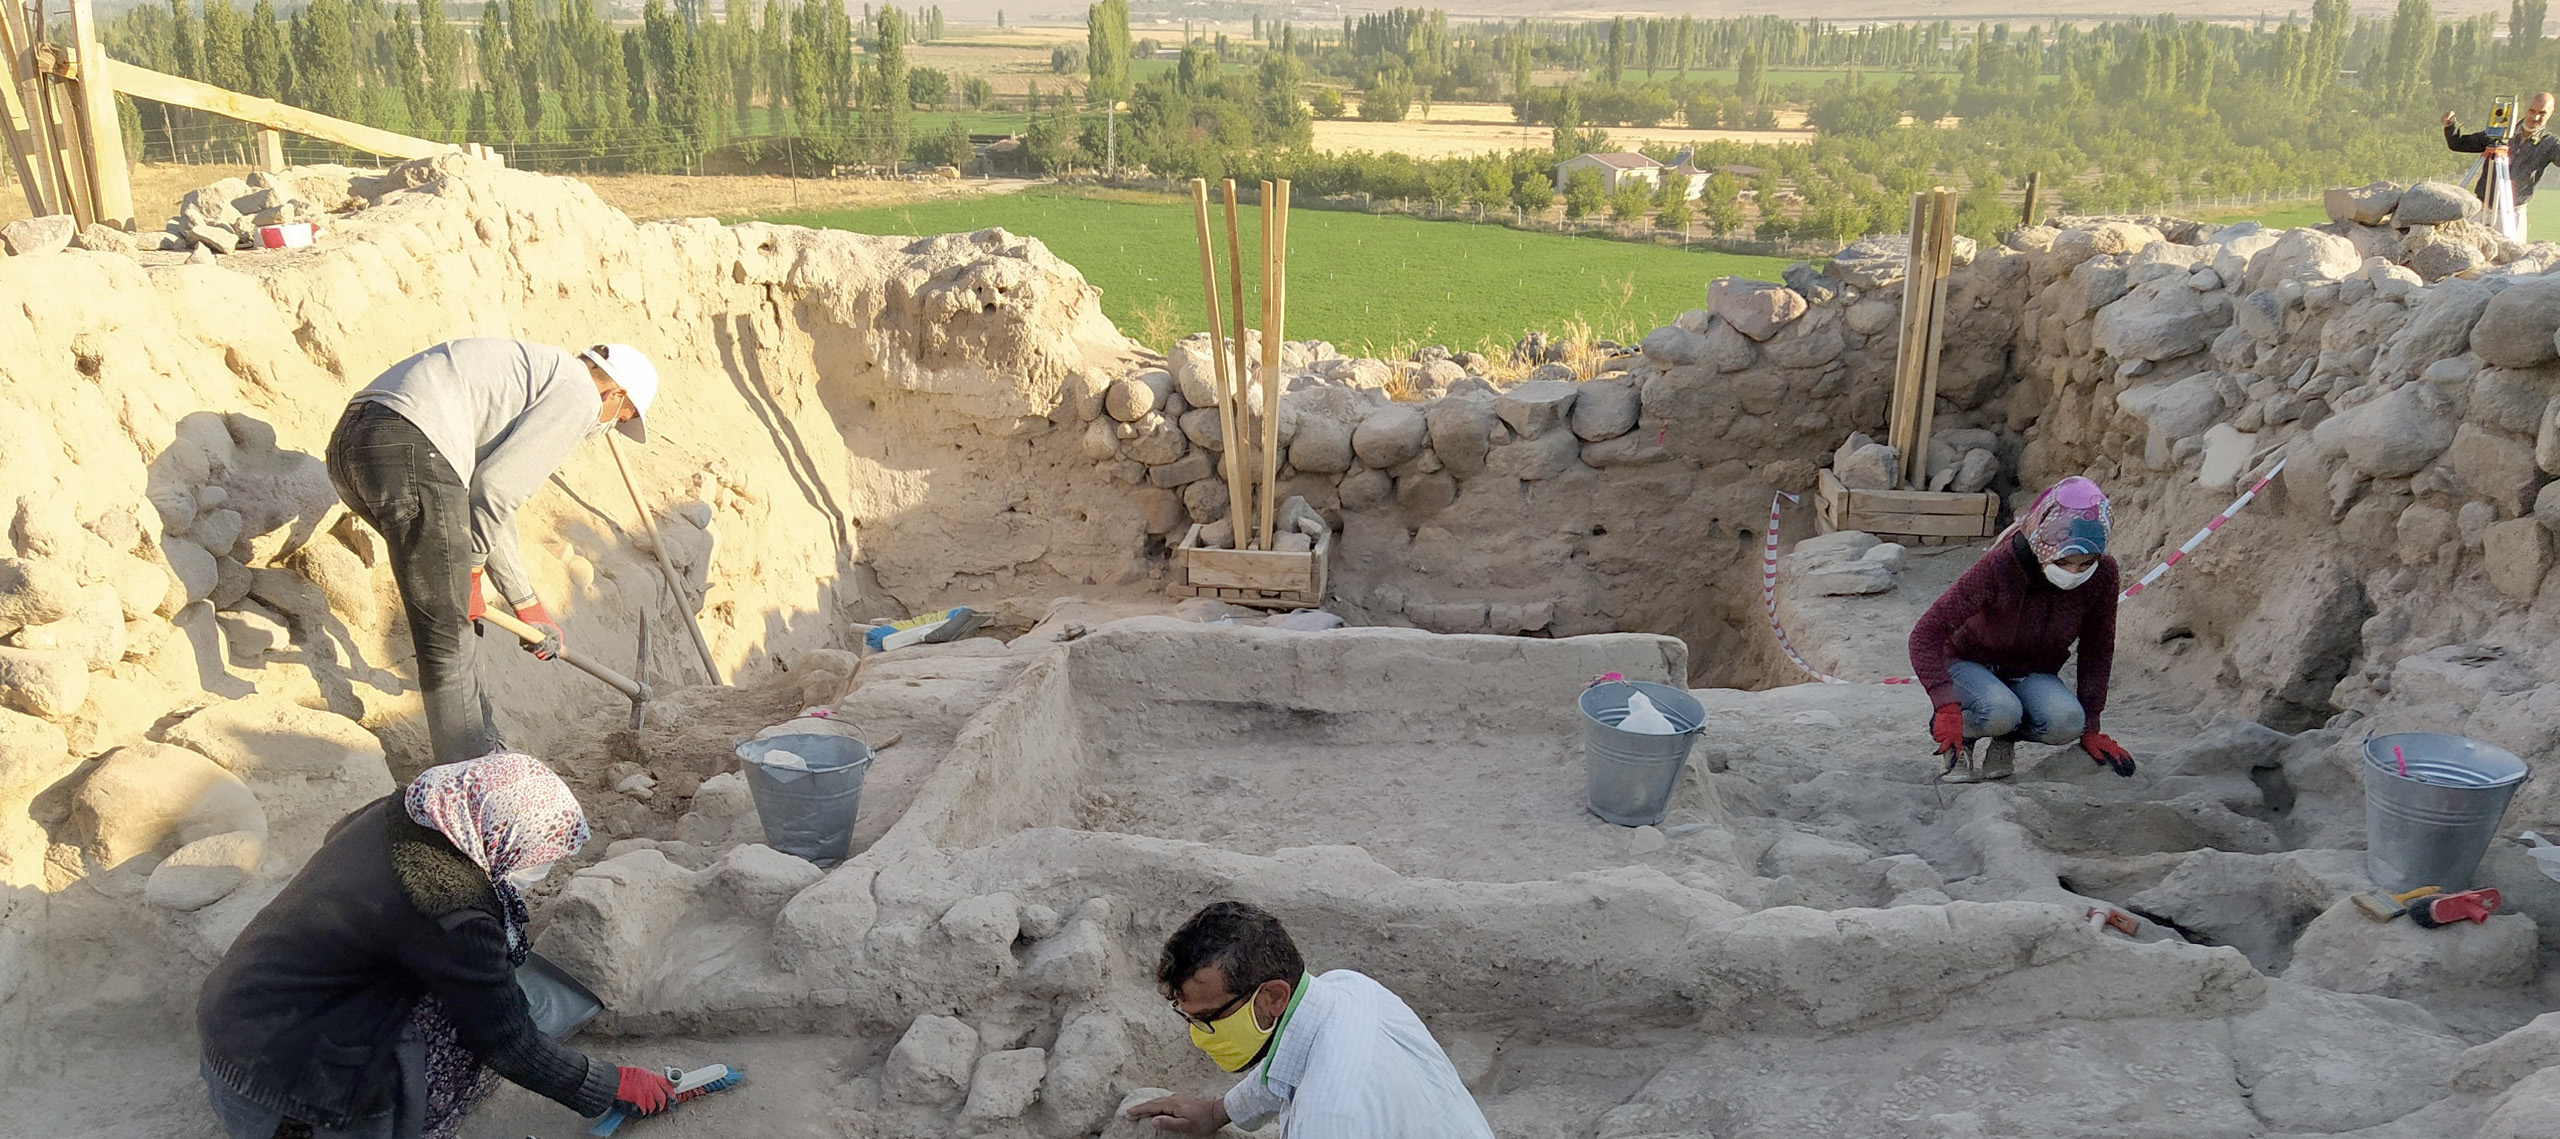 Four individuals wearing masks, long sleeved shirts, and long pants work in an excavation with partially exposed walls of stone and mud or plaster. There is a large rectangular shallow feature in the middle of the area and a man with a total station can be seen beyond the wall. Behind him a green agricultural area bounded by trees can be seen